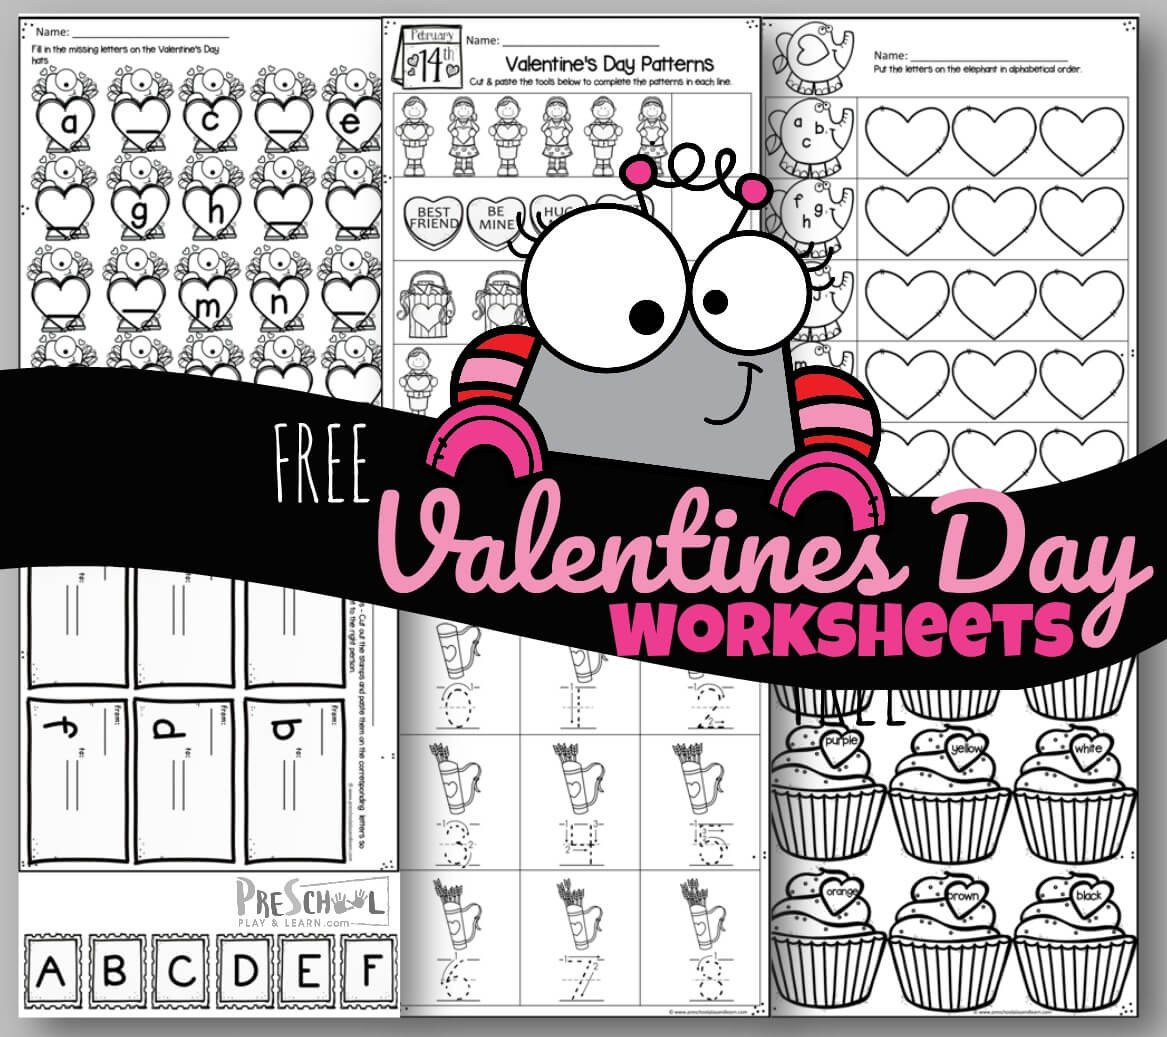 Valentines Day Worksheets for Kindergarten tons Of Free Valentines Day Worksheets